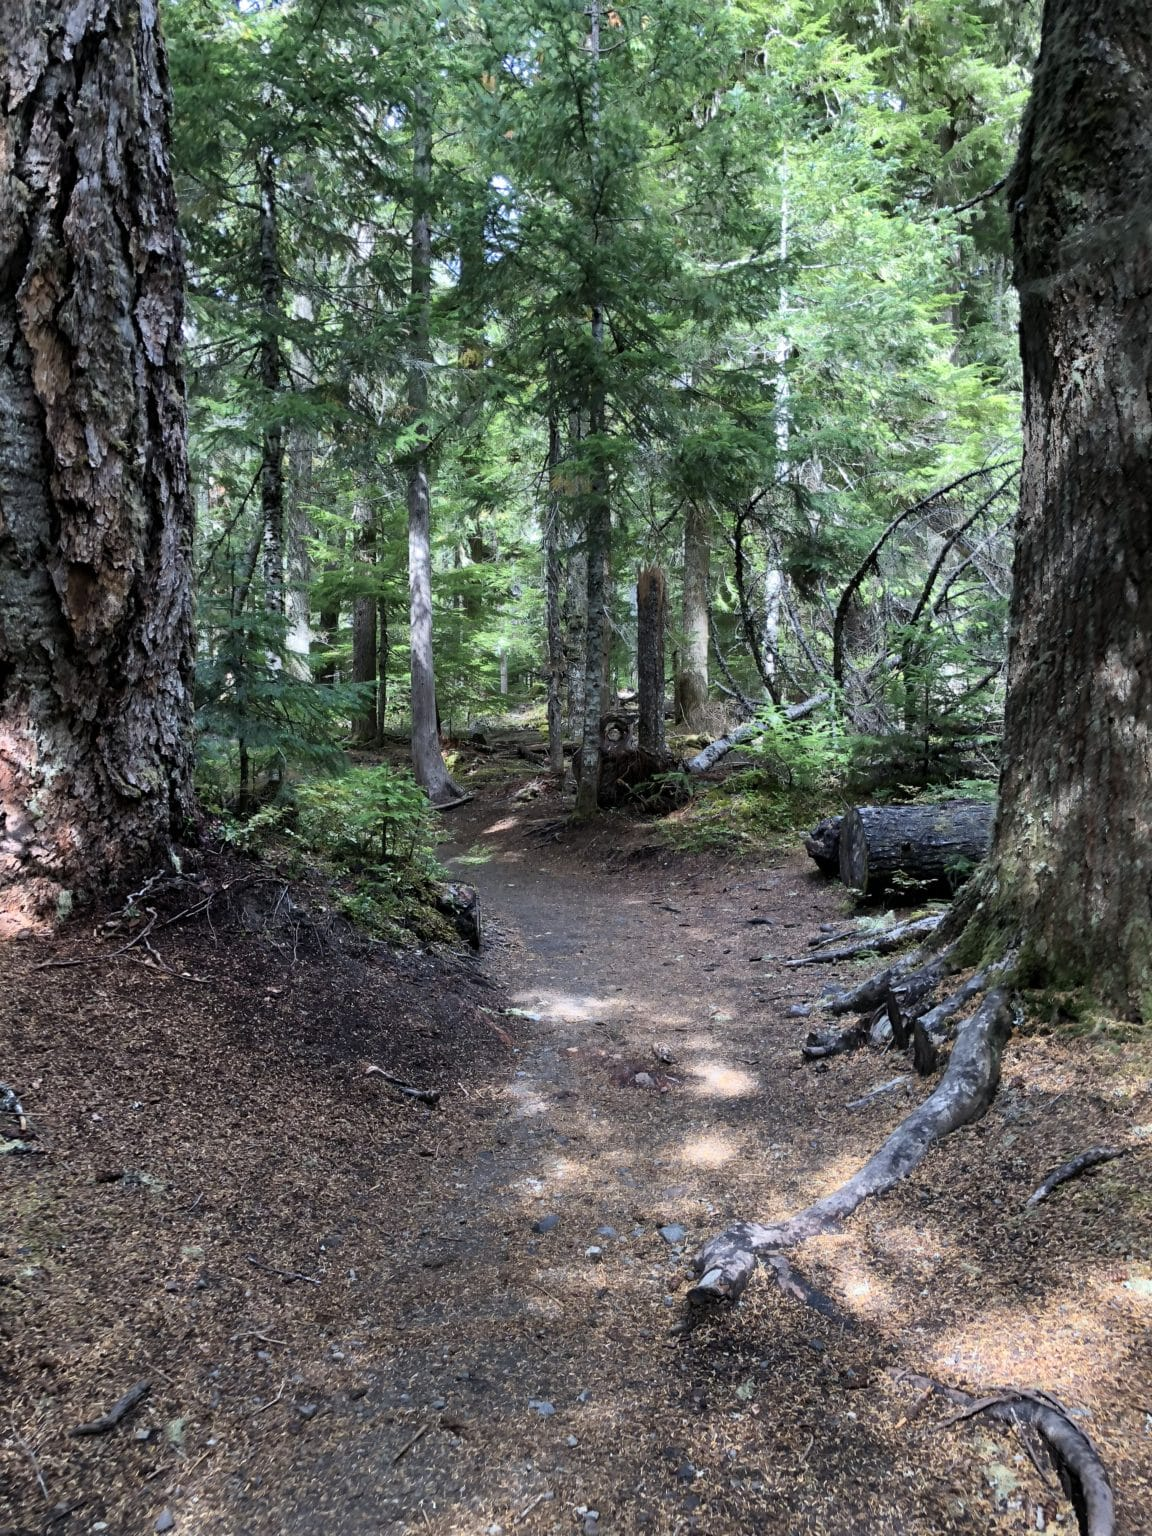 A hike within Mt. Rainer, WA and up to Carter Falls, a segment of the Wonderland Trail. B62F9175-A46